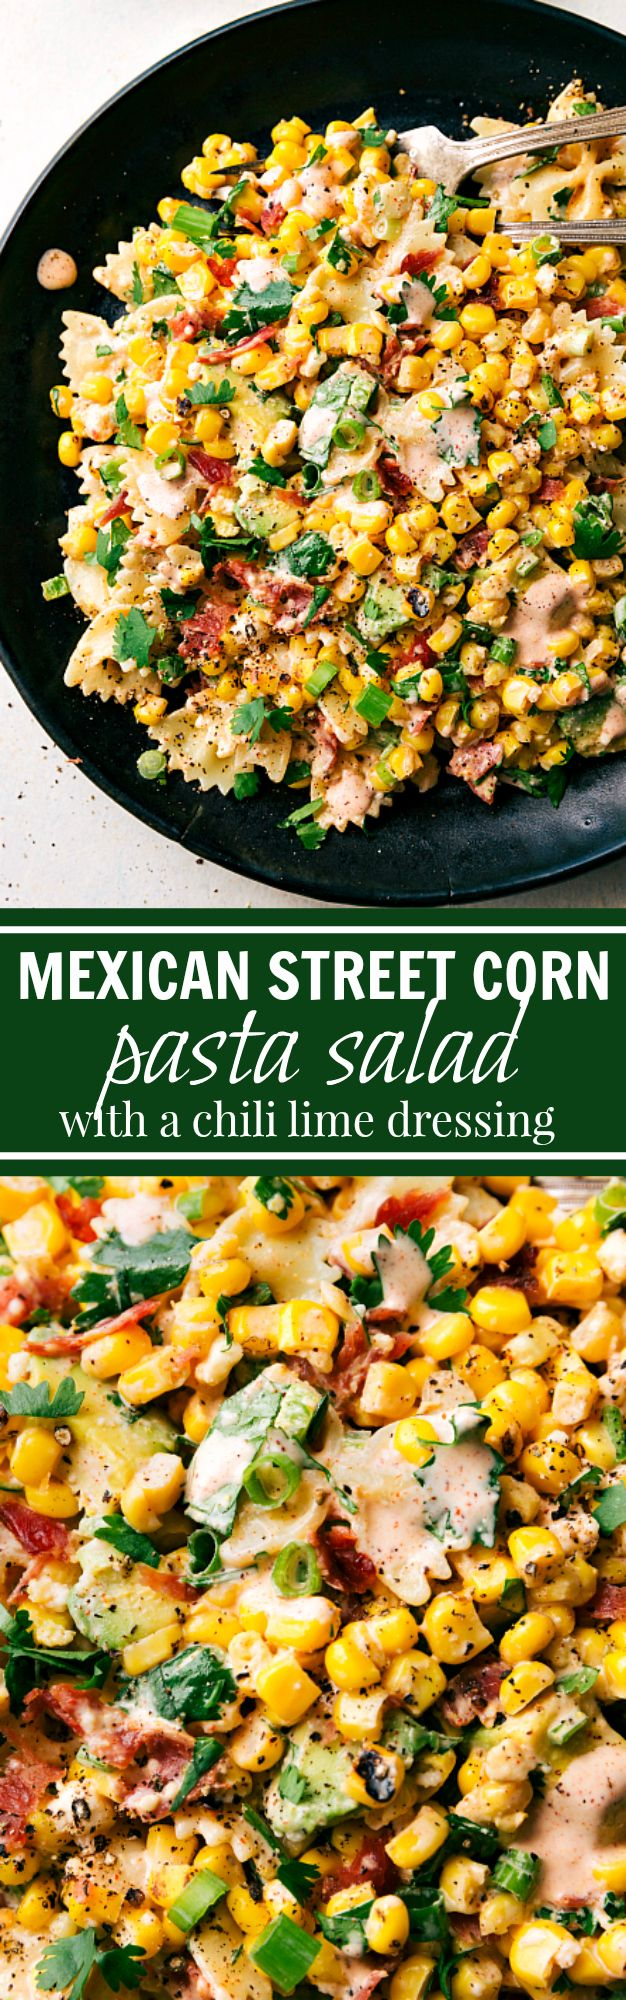 buy online jewellery A delicious MEXICAN STREET CORN Pasta salad with tons of veggies bacon and a simple creamy CHILI LIME dressing Recipe via chelseasmessyapron com